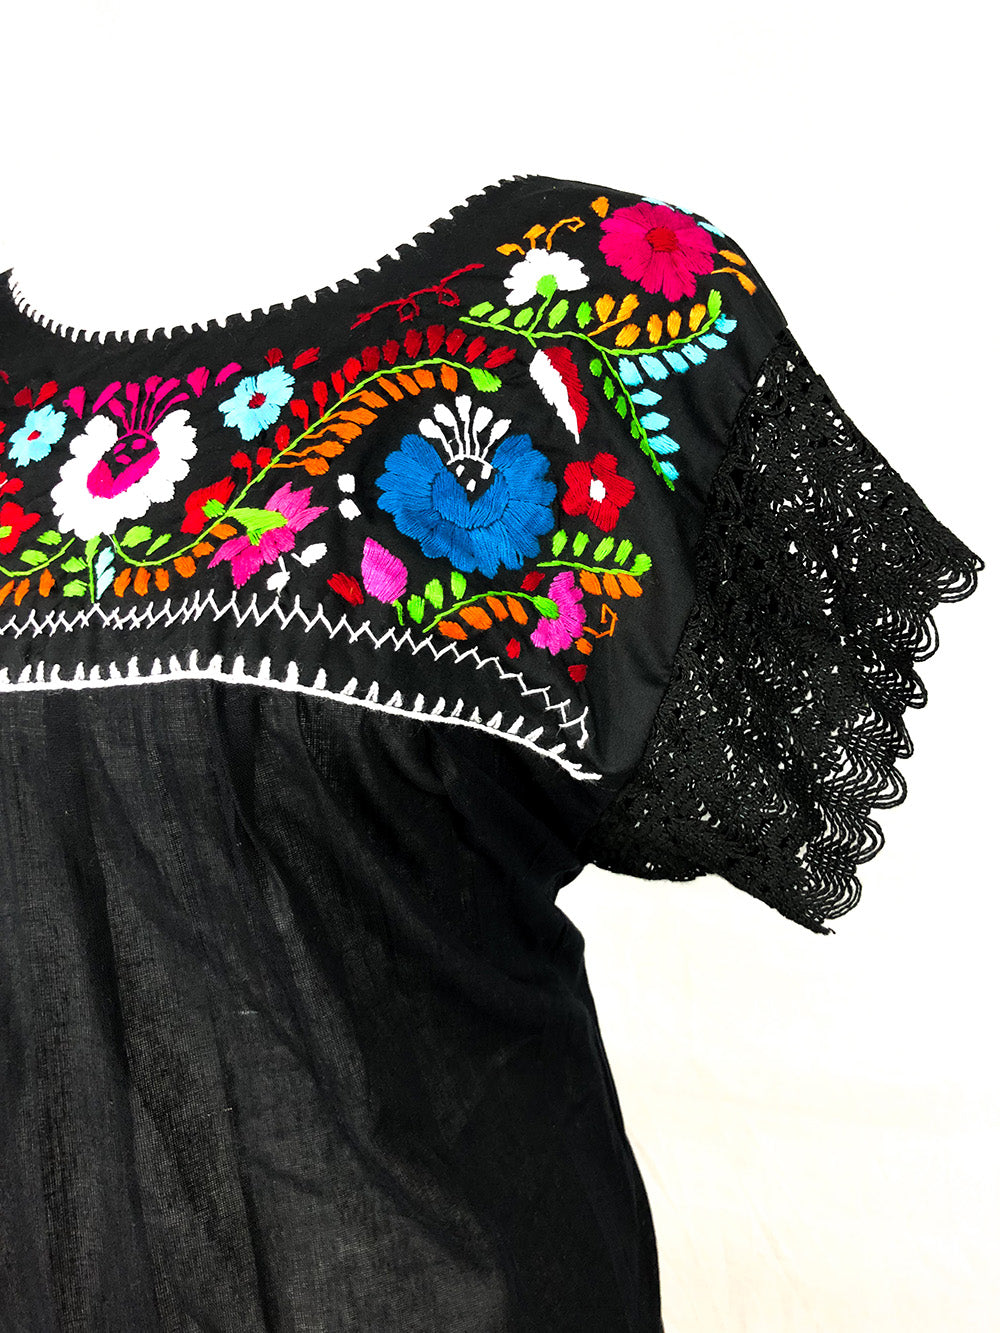 Embroidered Top Margarita Lace